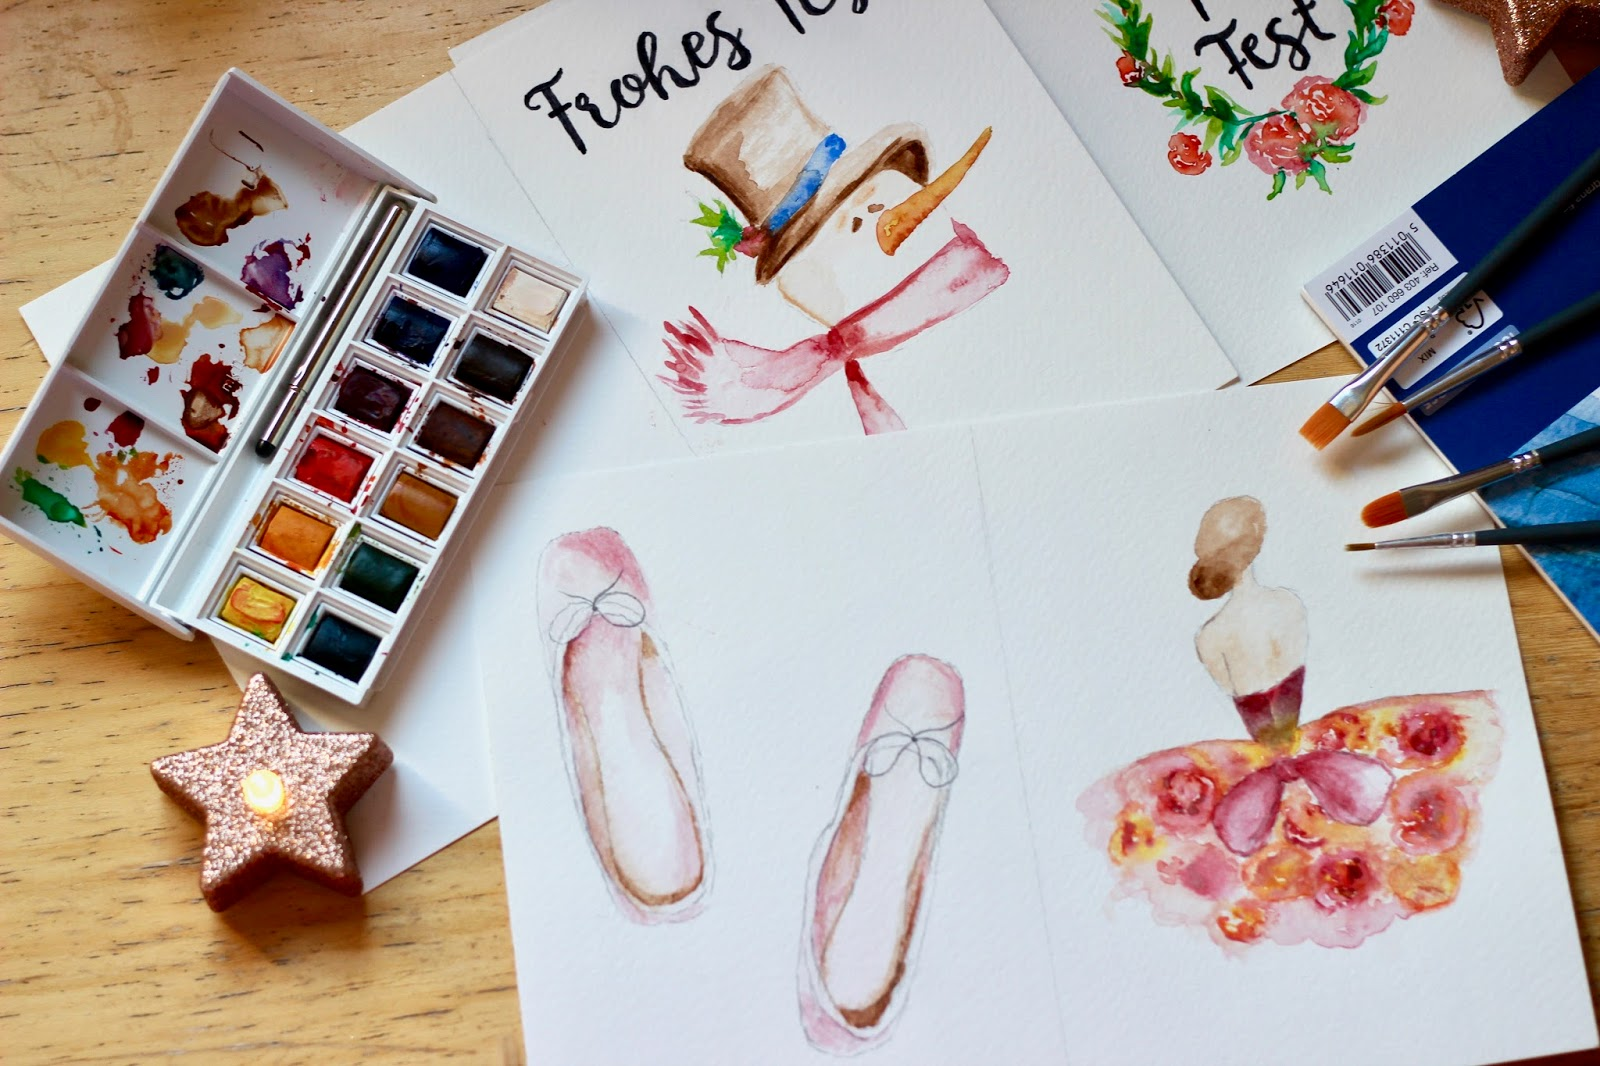 Christmas creative Watercolour art